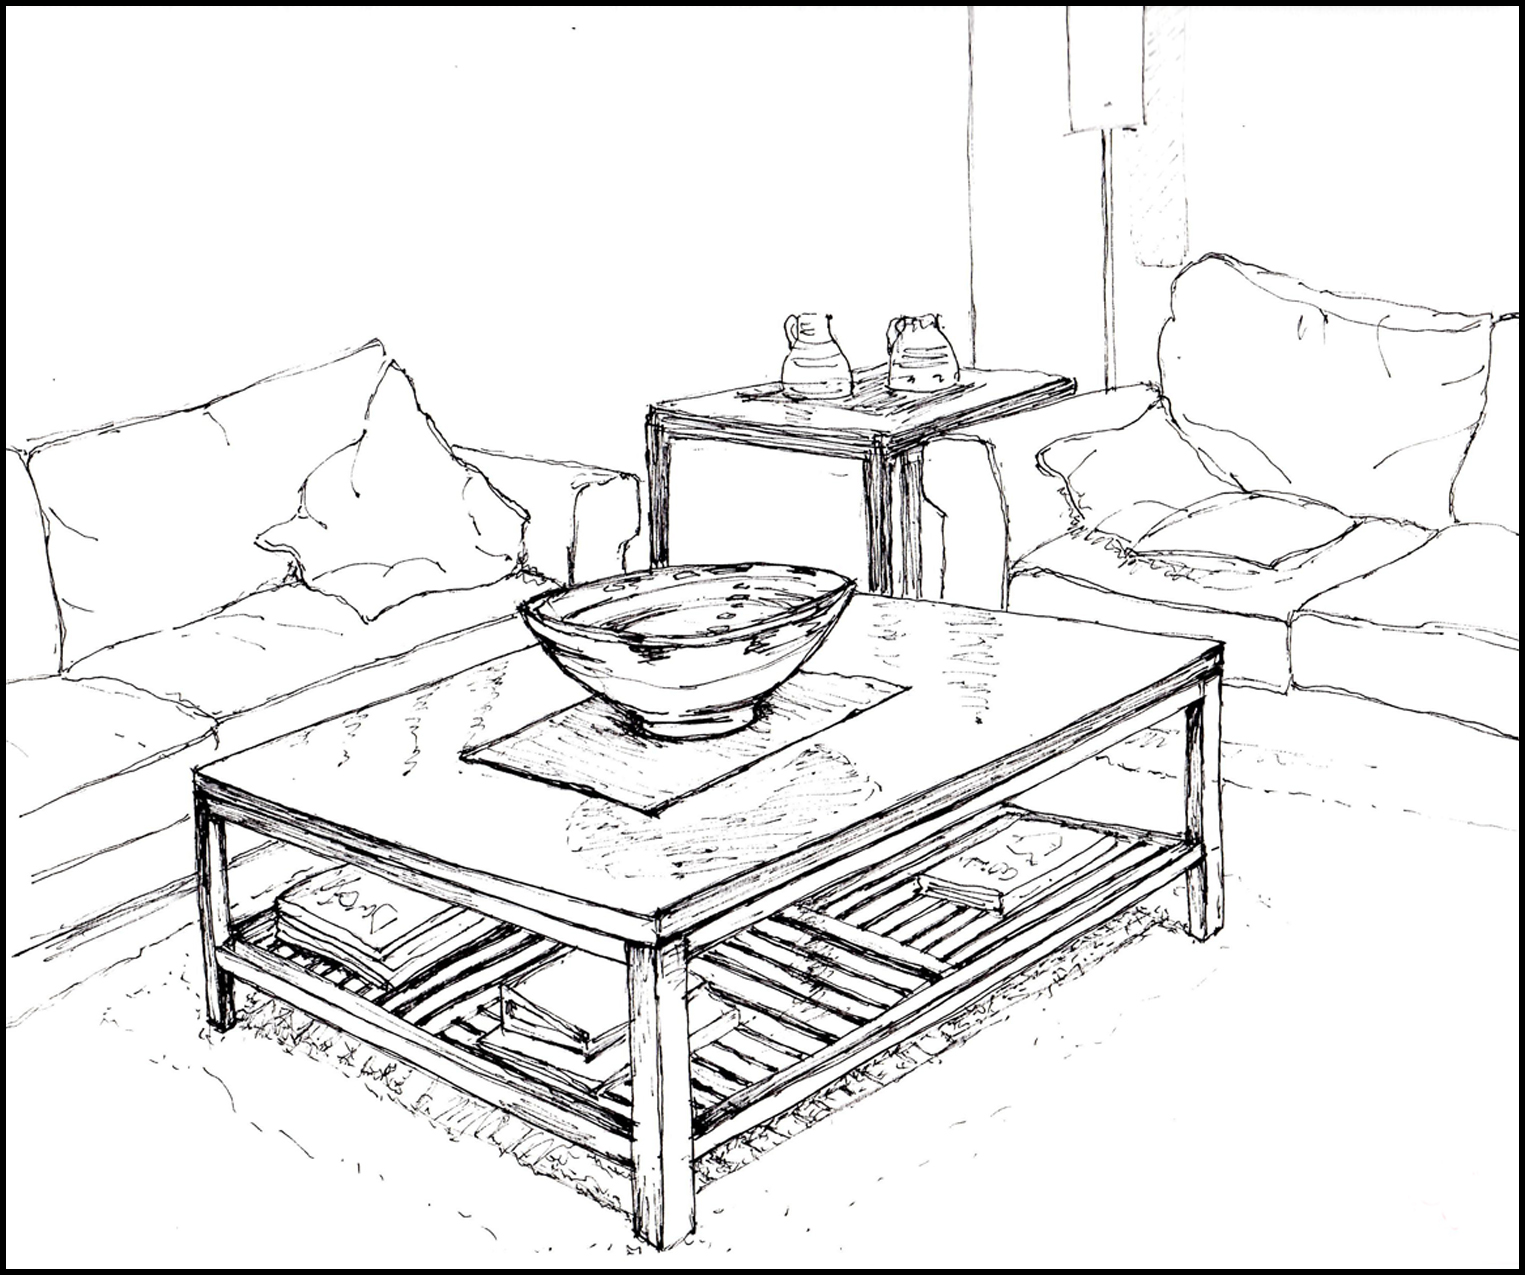 Living Room Perspective Drawing at GetDrawings.com | Free for ...